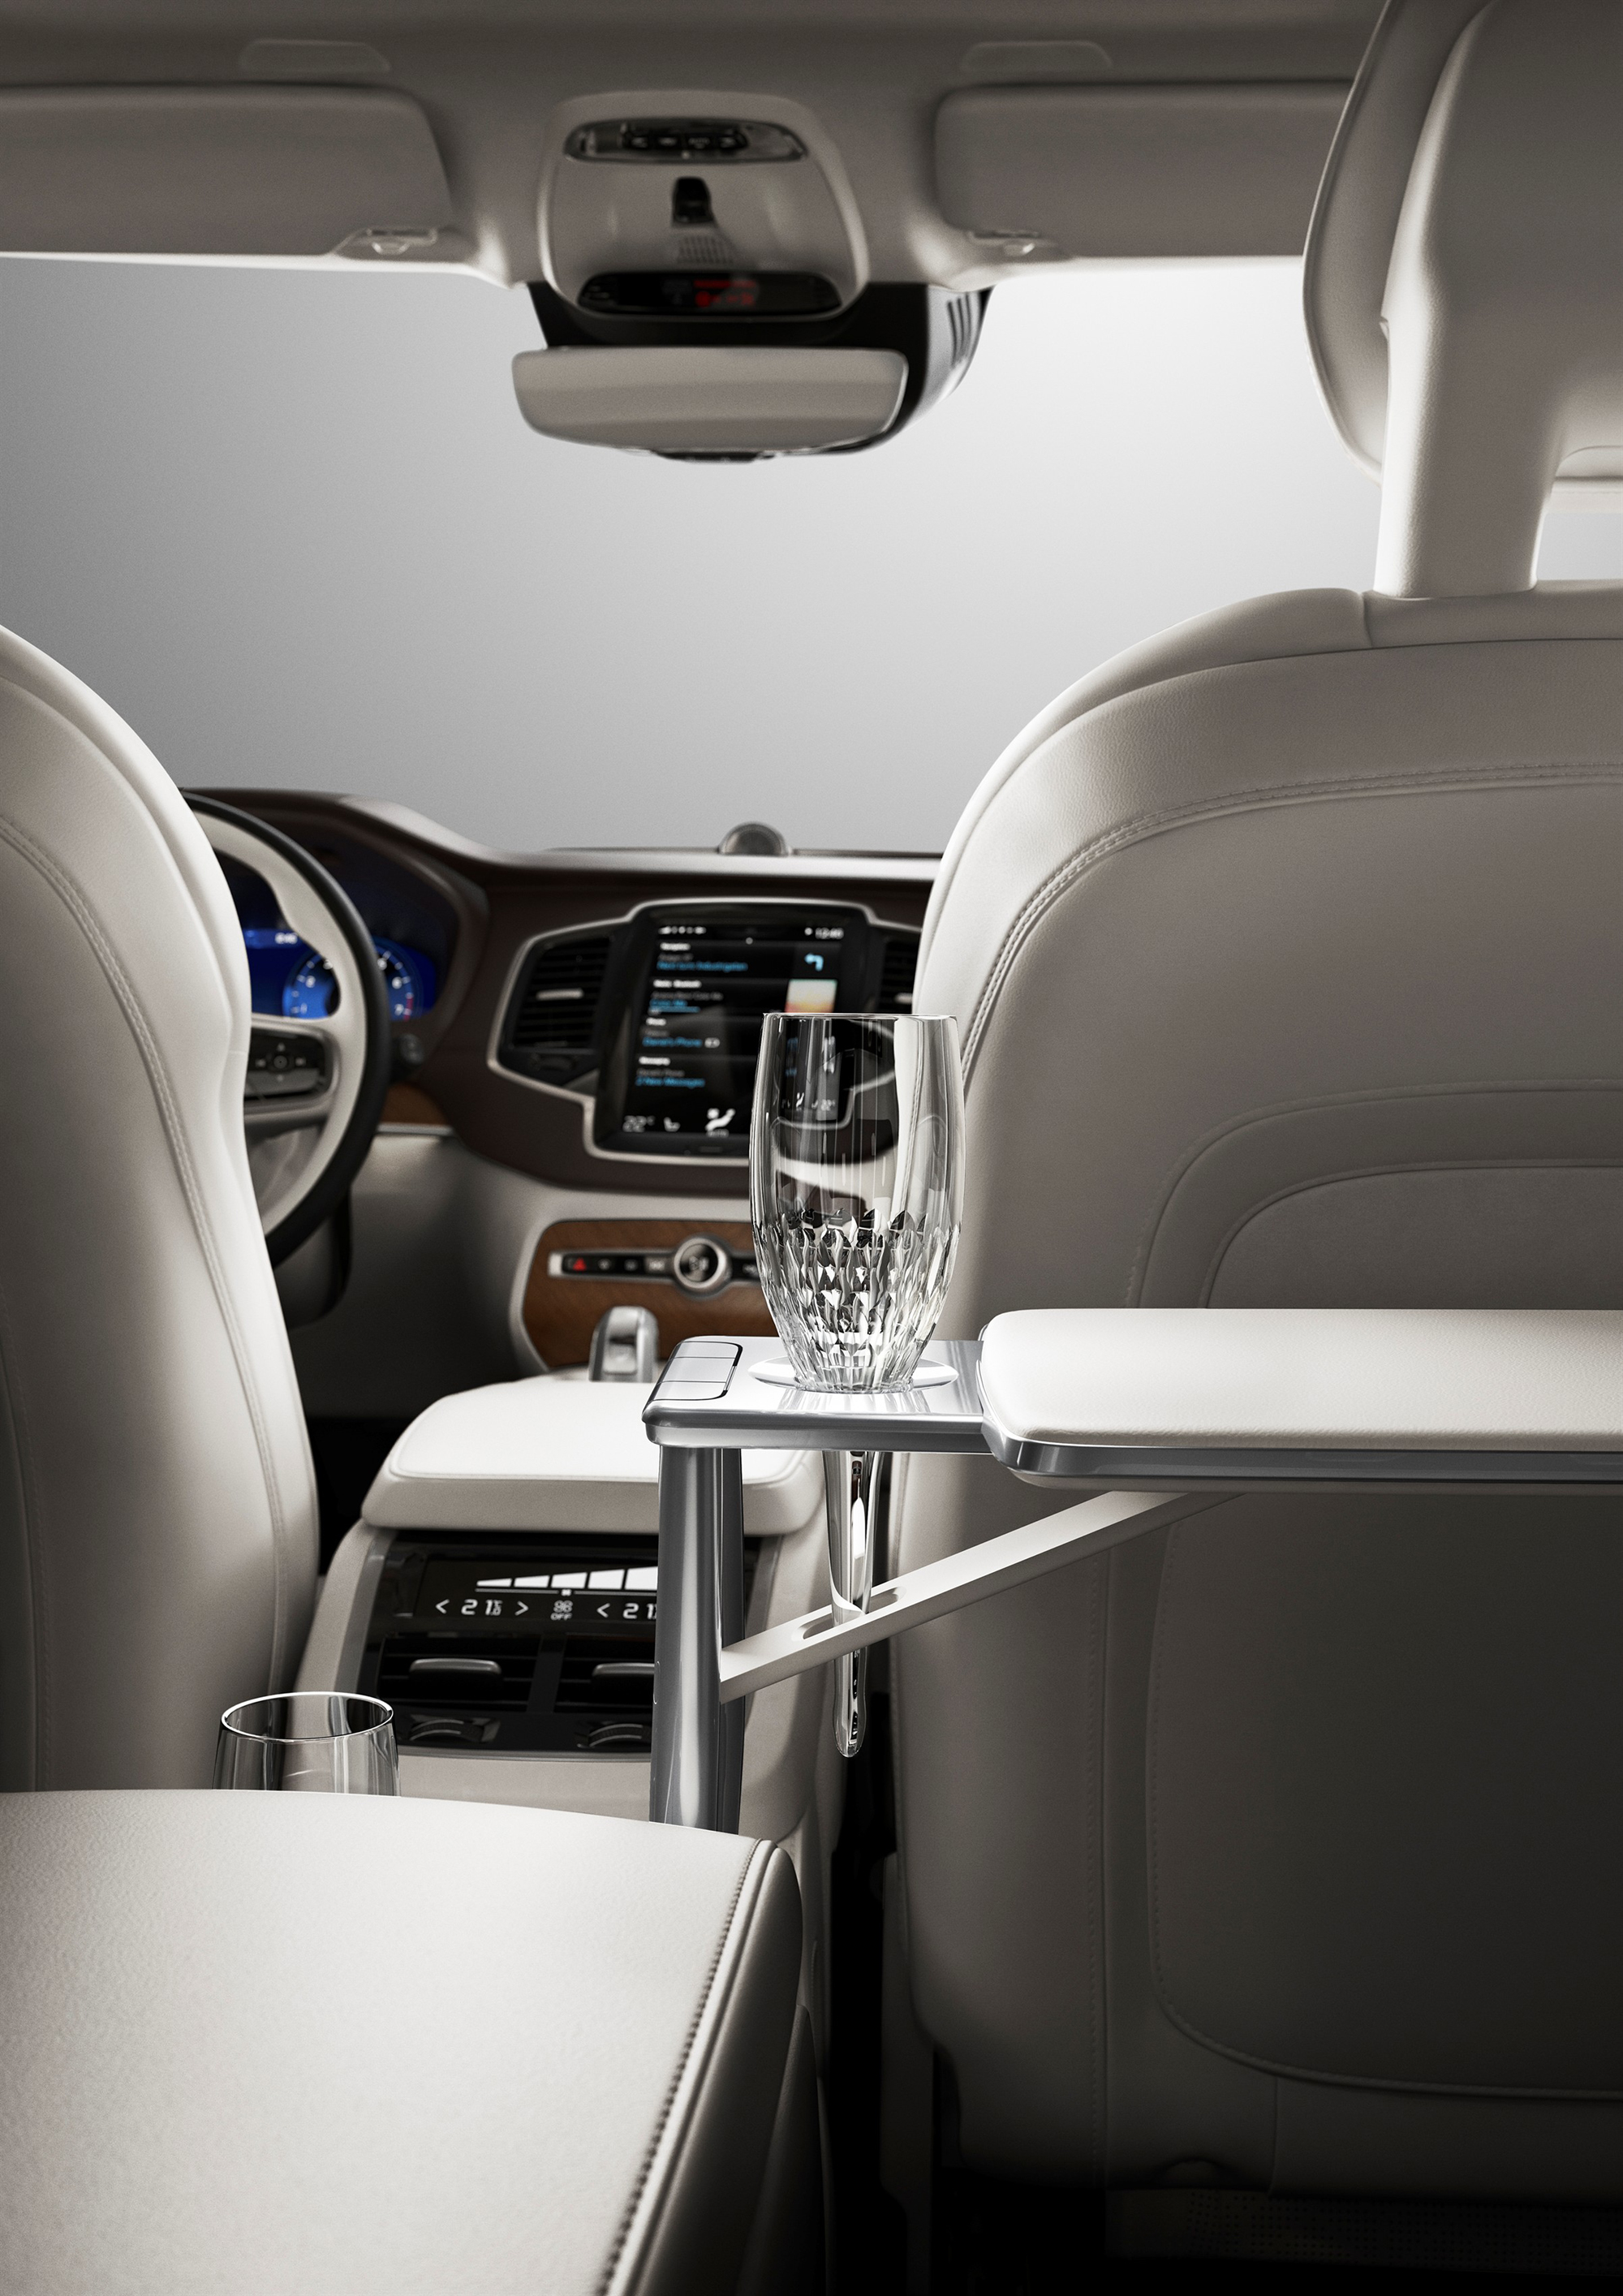 xc 90 39 excellence 39 has volvo 39 s swedest interior ever news. Black Bedroom Furniture Sets. Home Design Ideas